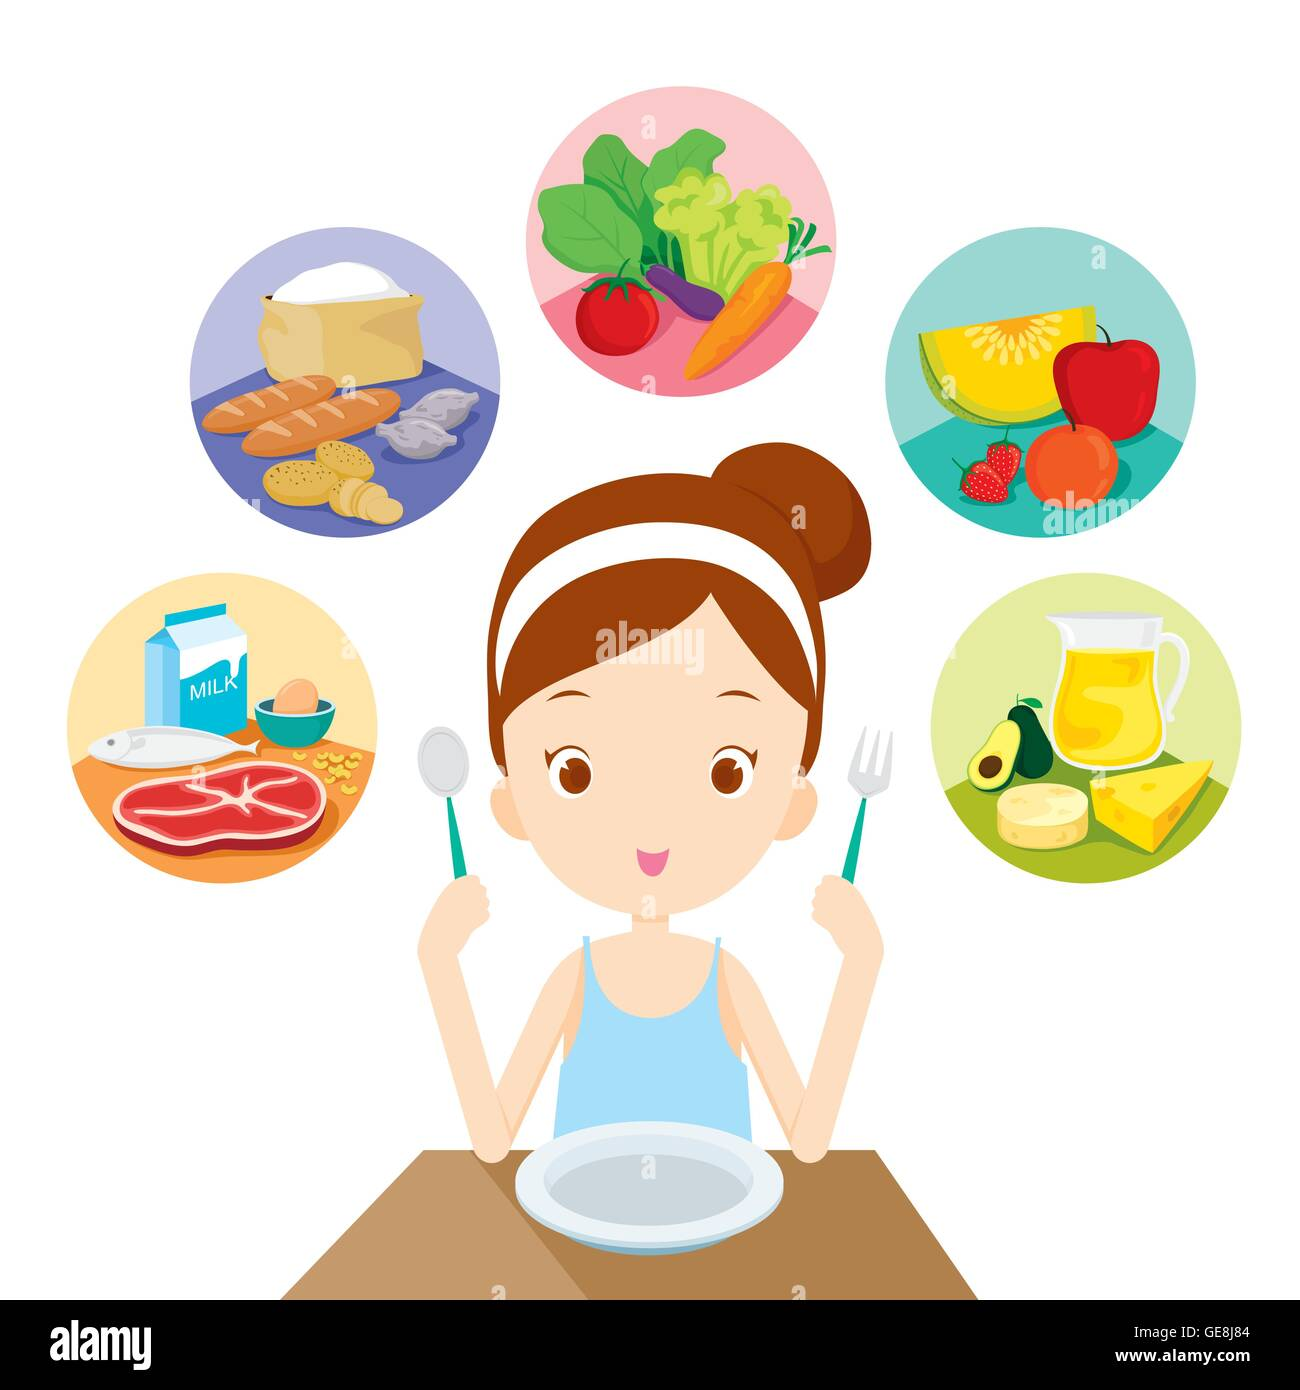 Cute Girl Ready To Eat The 5 Food Groups Healthy Organic Stock Vector Art Amp Illustration